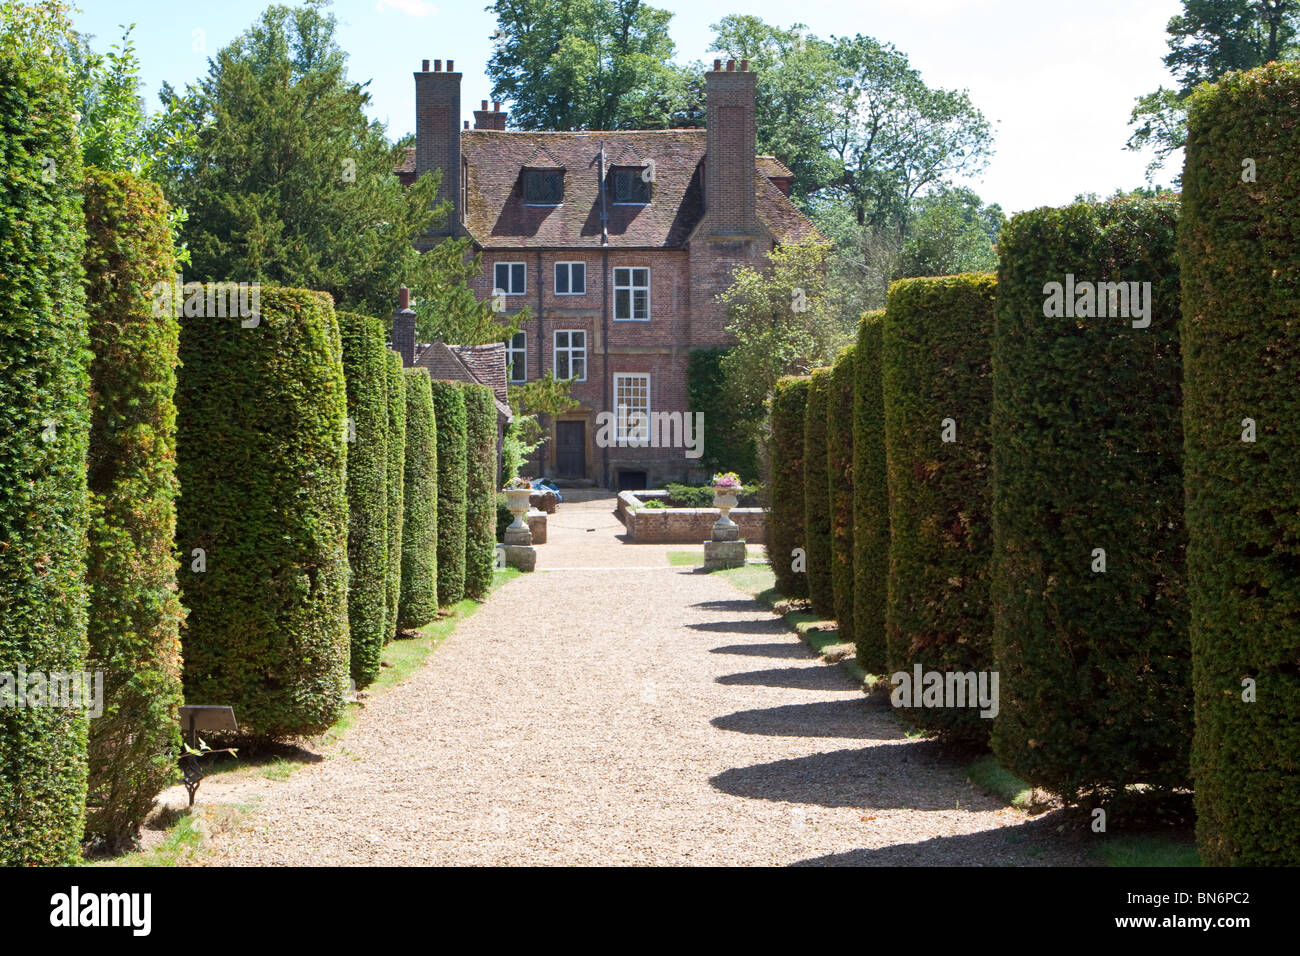 Groombridge Place and Avenue of Trees - Stock Image